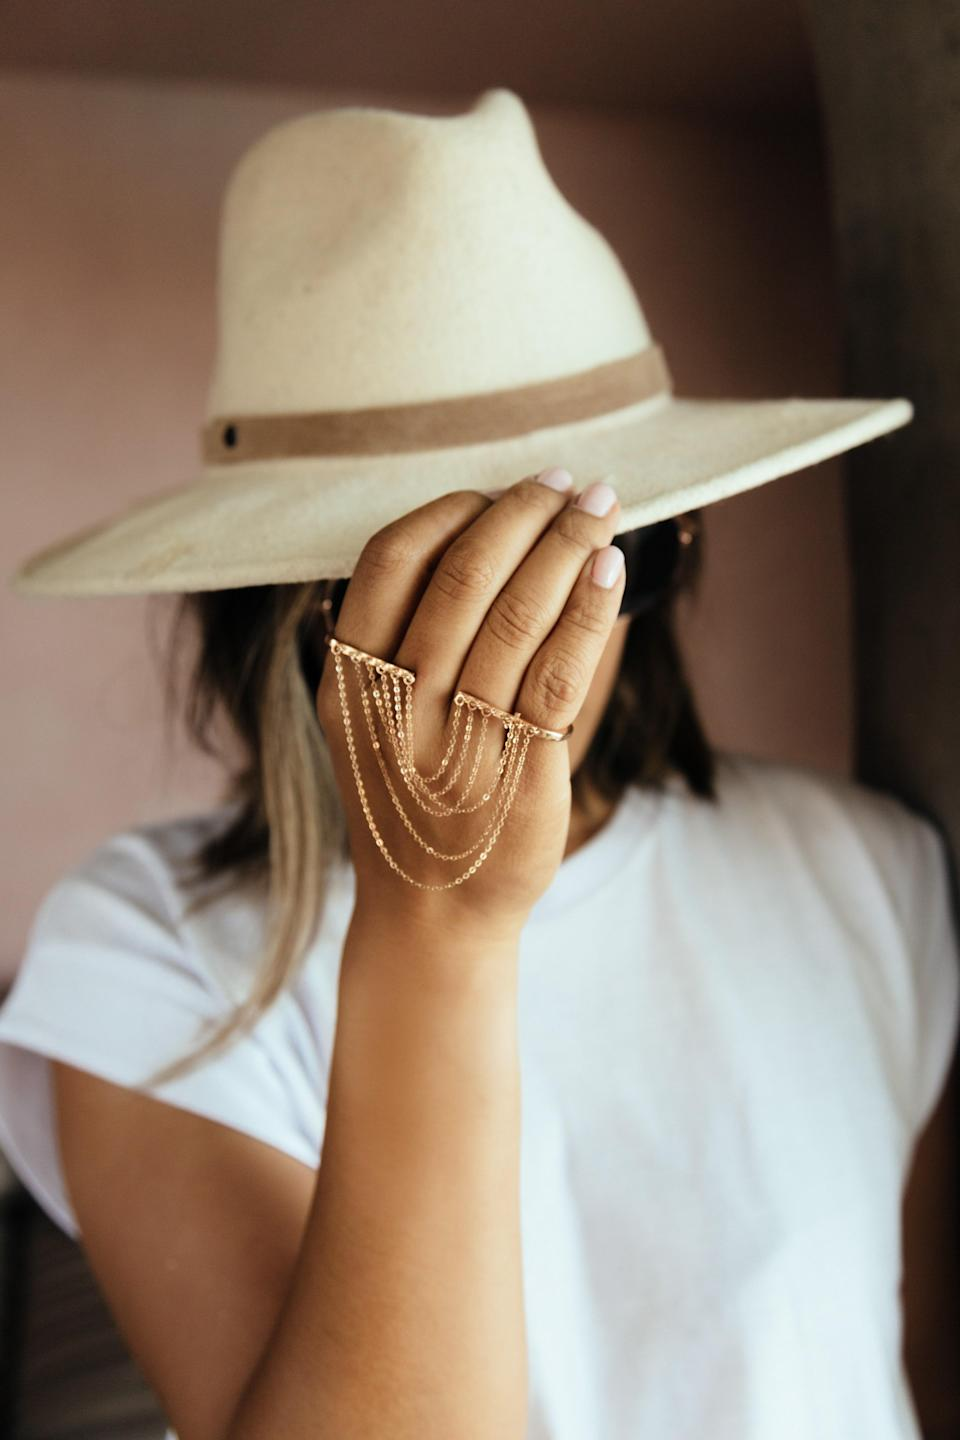 """<p>Klarissa Mae is a Filipina American based in Los Angeles. A positive psychotherapist by training, she has always been passionate about helping women discover their true potential, feel empowered and believe they belong. Each ethically-sourced gold jewellery inspires women to be true to themselves. <a href=""""https://kmaejewelry.com/collections/hand-jewelry/products/sashet?variant=33136666345612"""" rel=""""nofollow noopener"""" target=""""_blank"""" data-ylk=""""slk:kmaejewelry.com"""" class=""""link rapid-noclick-resp"""">kmaejewelry.com</a></p> <p><em>Follow them on Instagram</em> <a href=""""https://www.instagram.com/kmaejewelry/?hl=en"""" rel=""""nofollow noopener"""" target=""""_blank"""" data-ylk=""""slk:@kmaejewelry"""" class=""""link rapid-noclick-resp""""><em>@kmaejewelry</em></a></p>"""